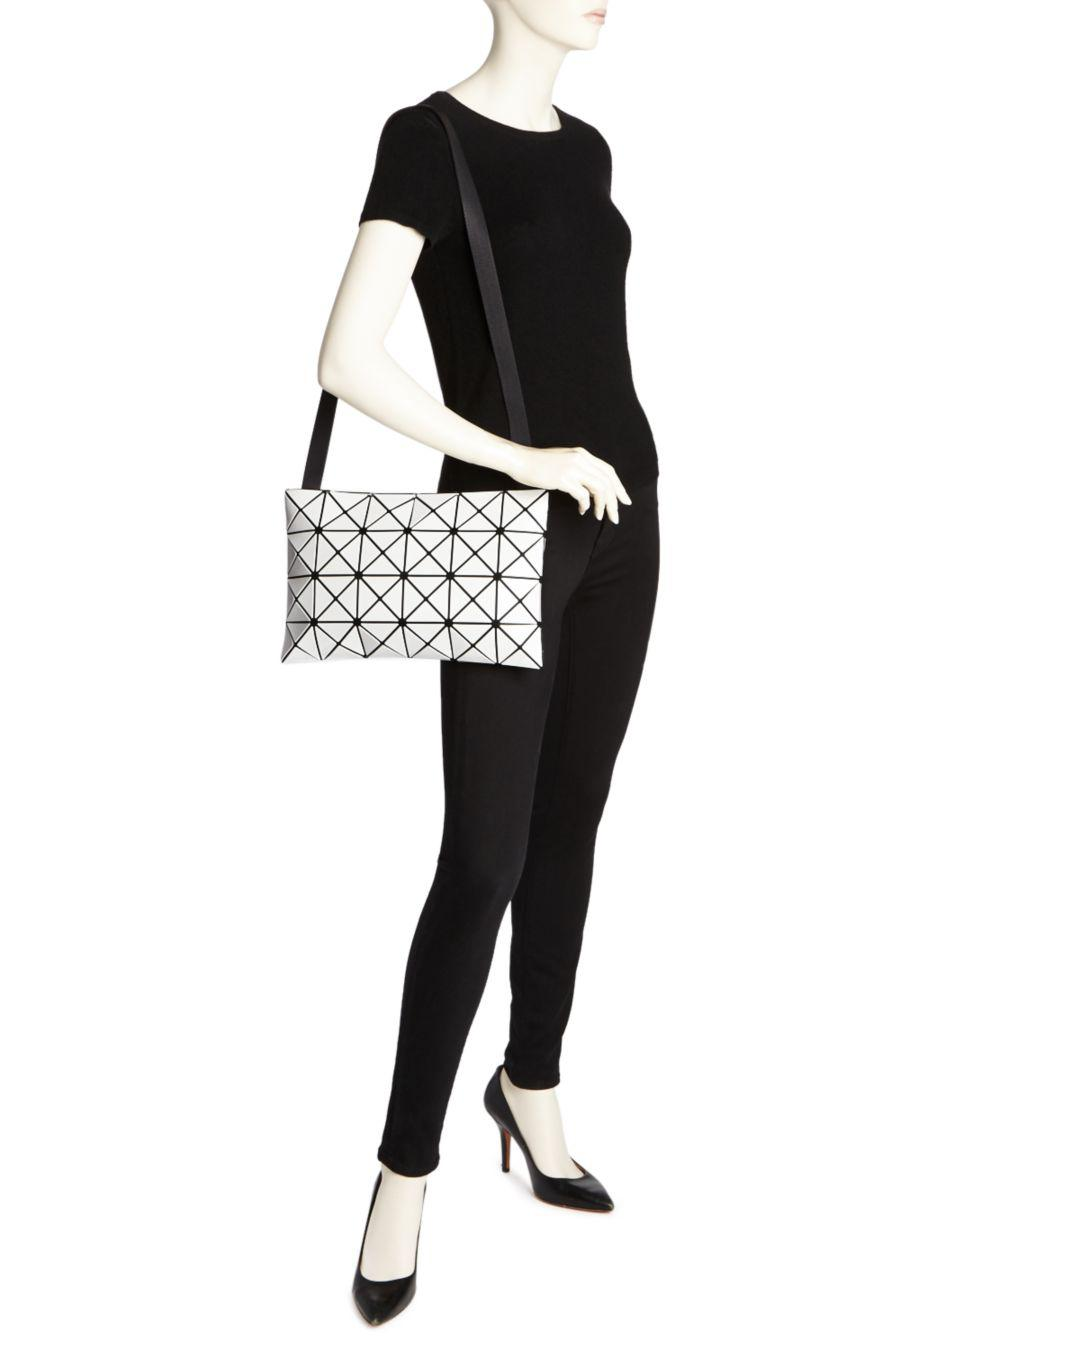 ... Lyst - Bao Bao Issey Miyake Lucent Large Crossbody in Black detailed  look 2ec52 70f56 ... 89438288a6e91